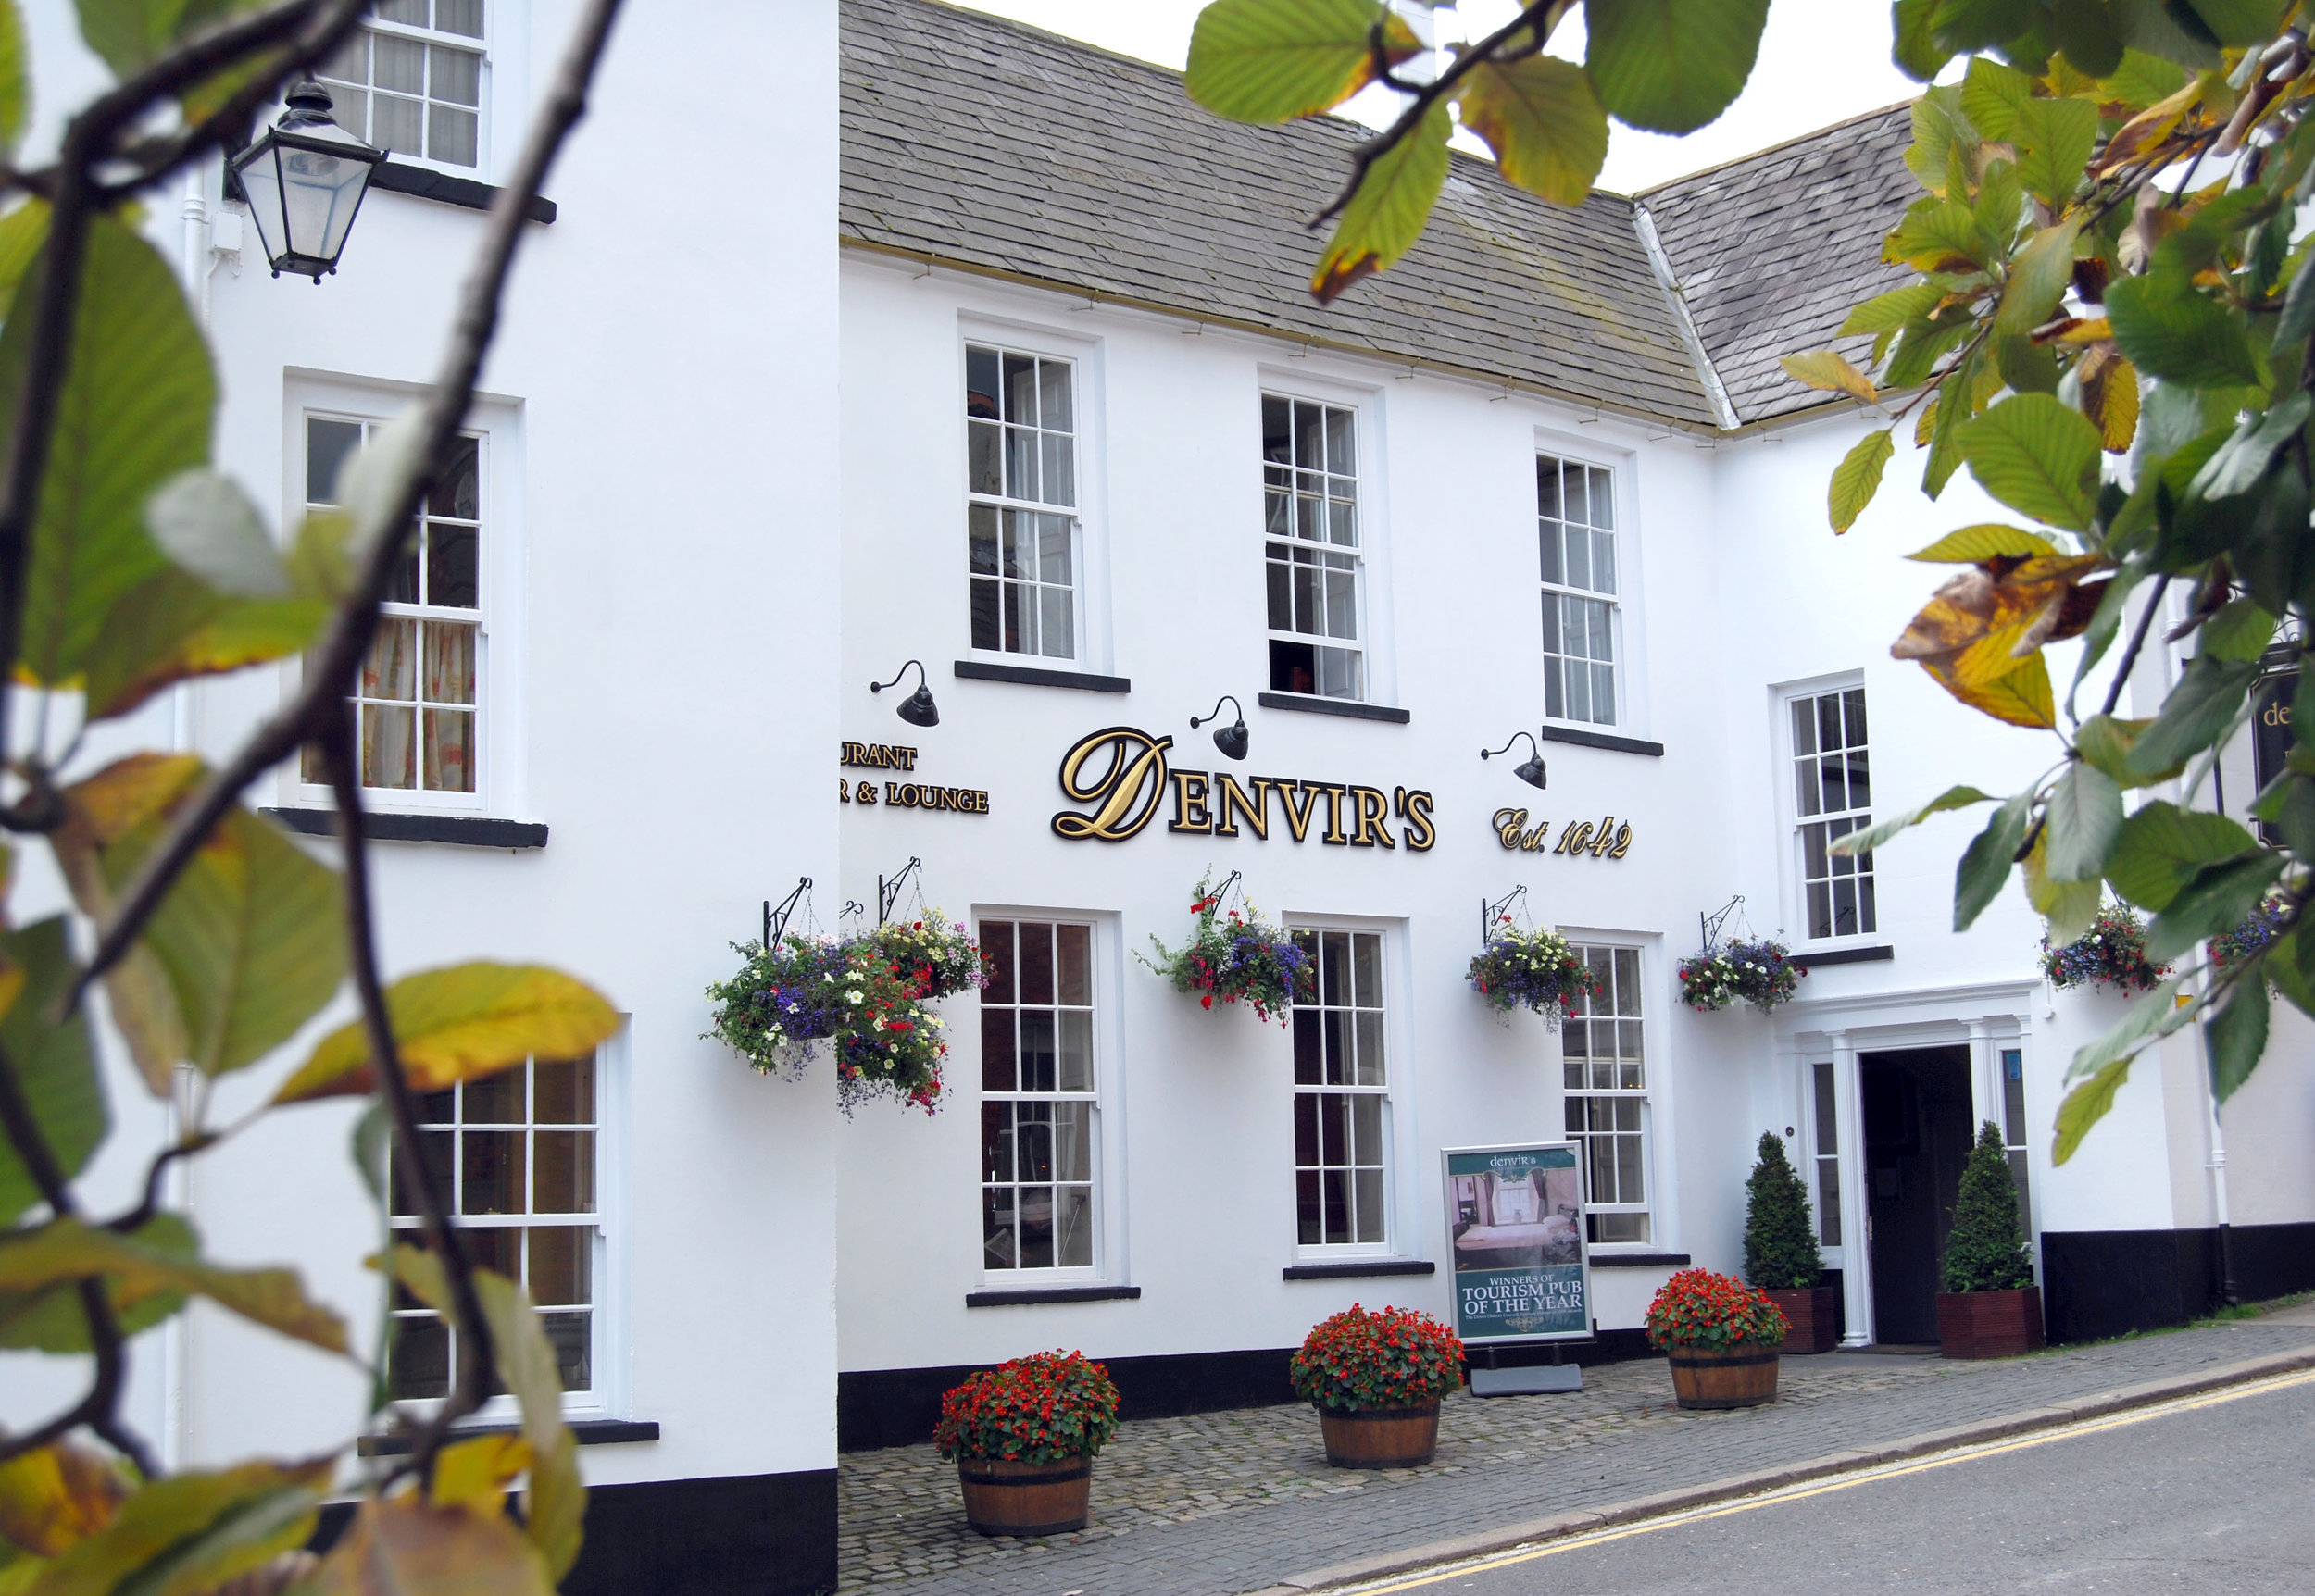 Denvir's Downpatrick - Are currently not recruiting at the moment